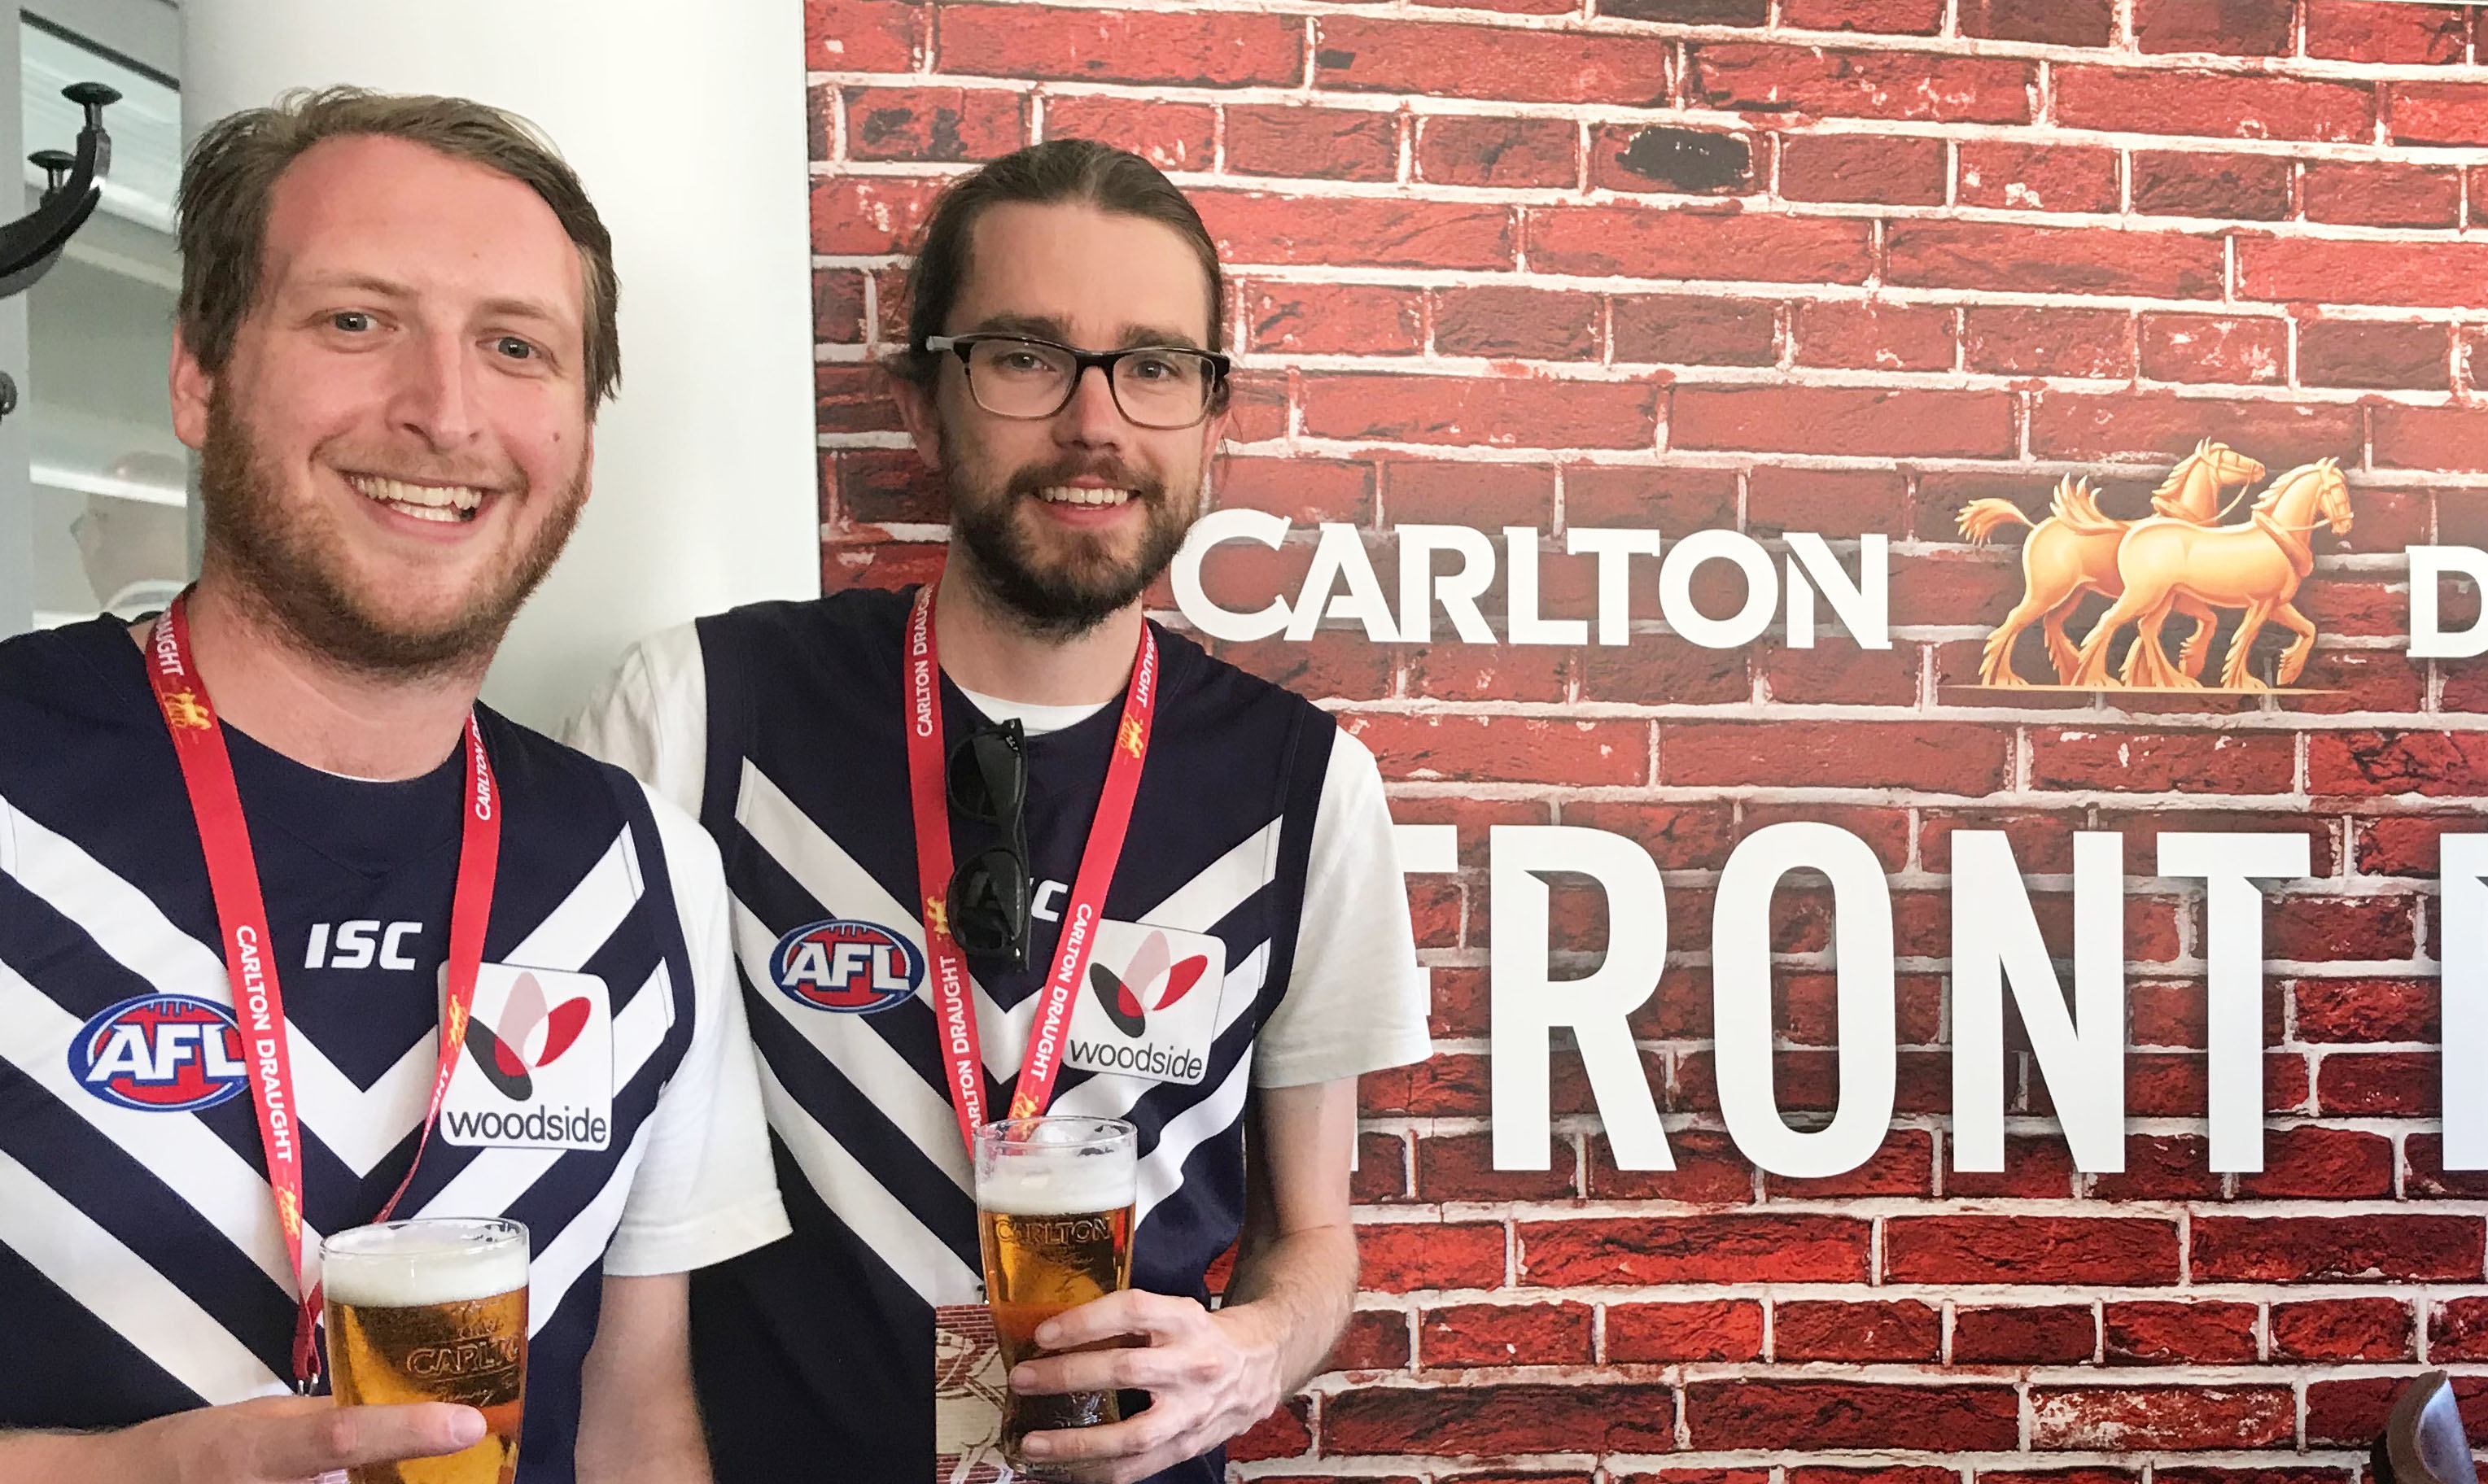 Win Tickets In The Carlton Draught Front Bar photo